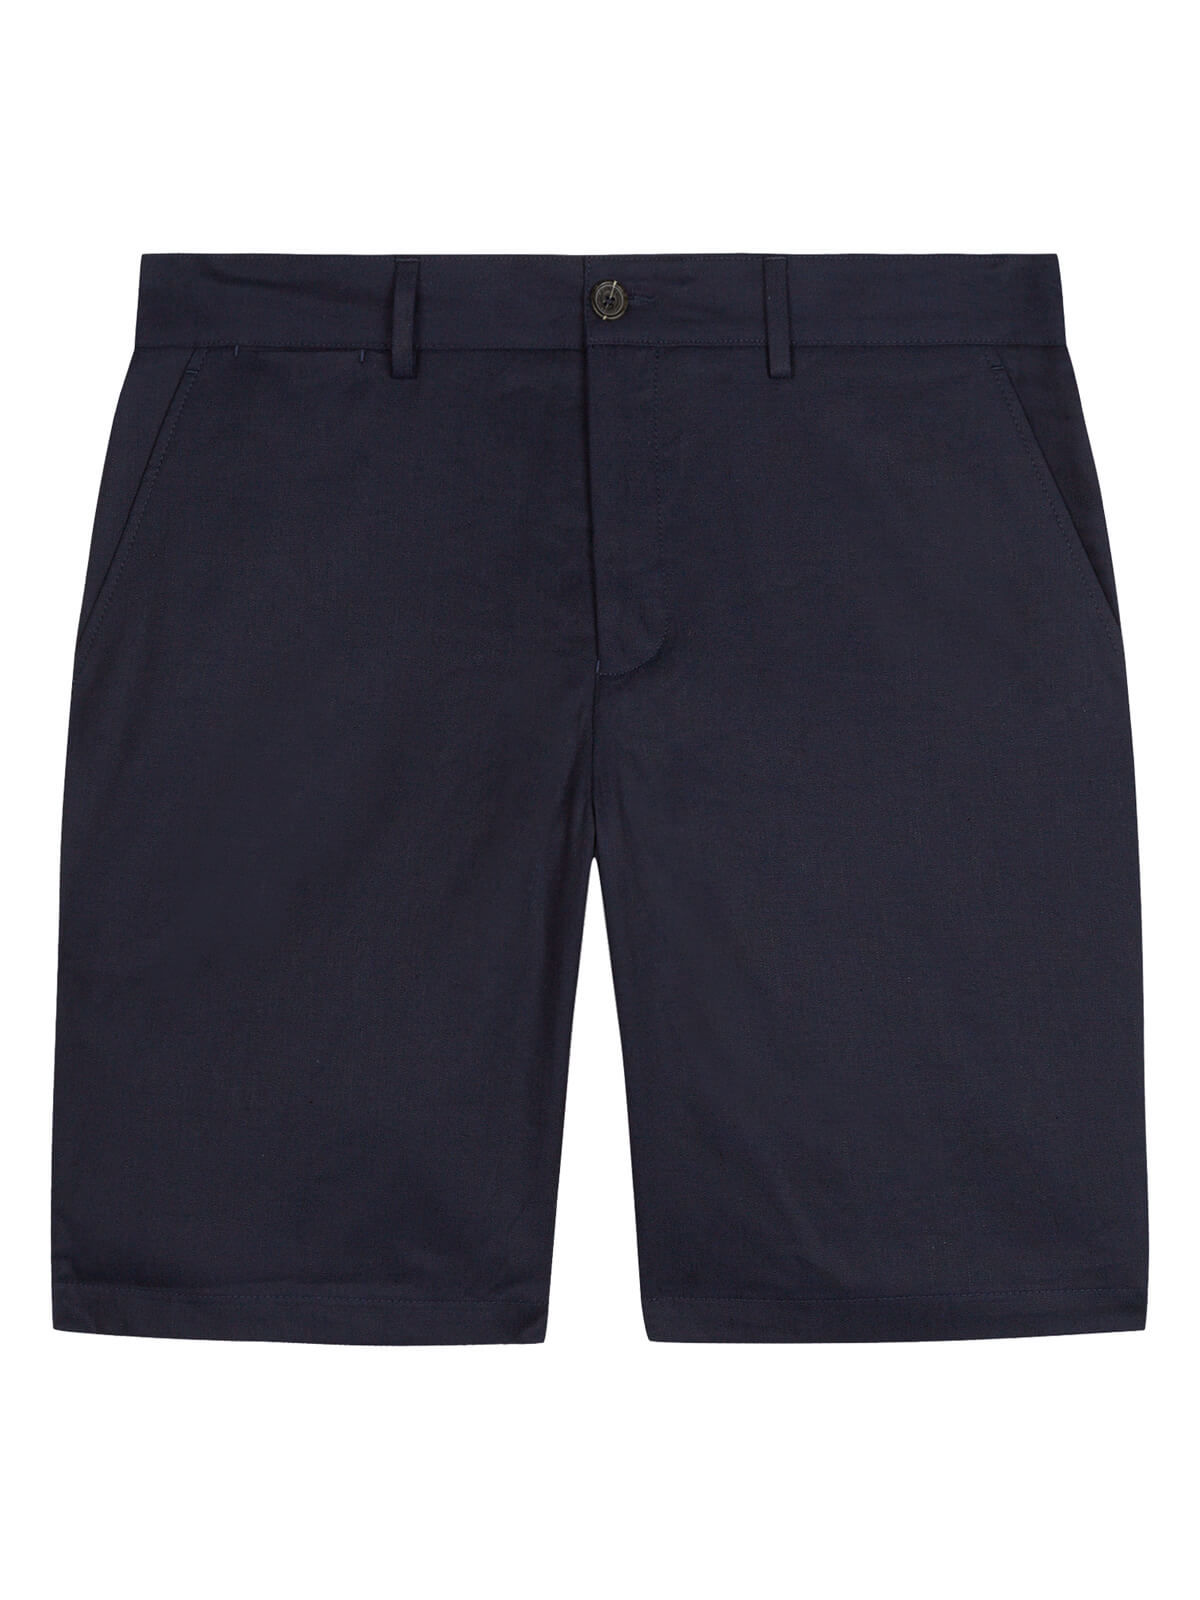 Lyle and Scott Navy Cotton Linen Chino Shorts